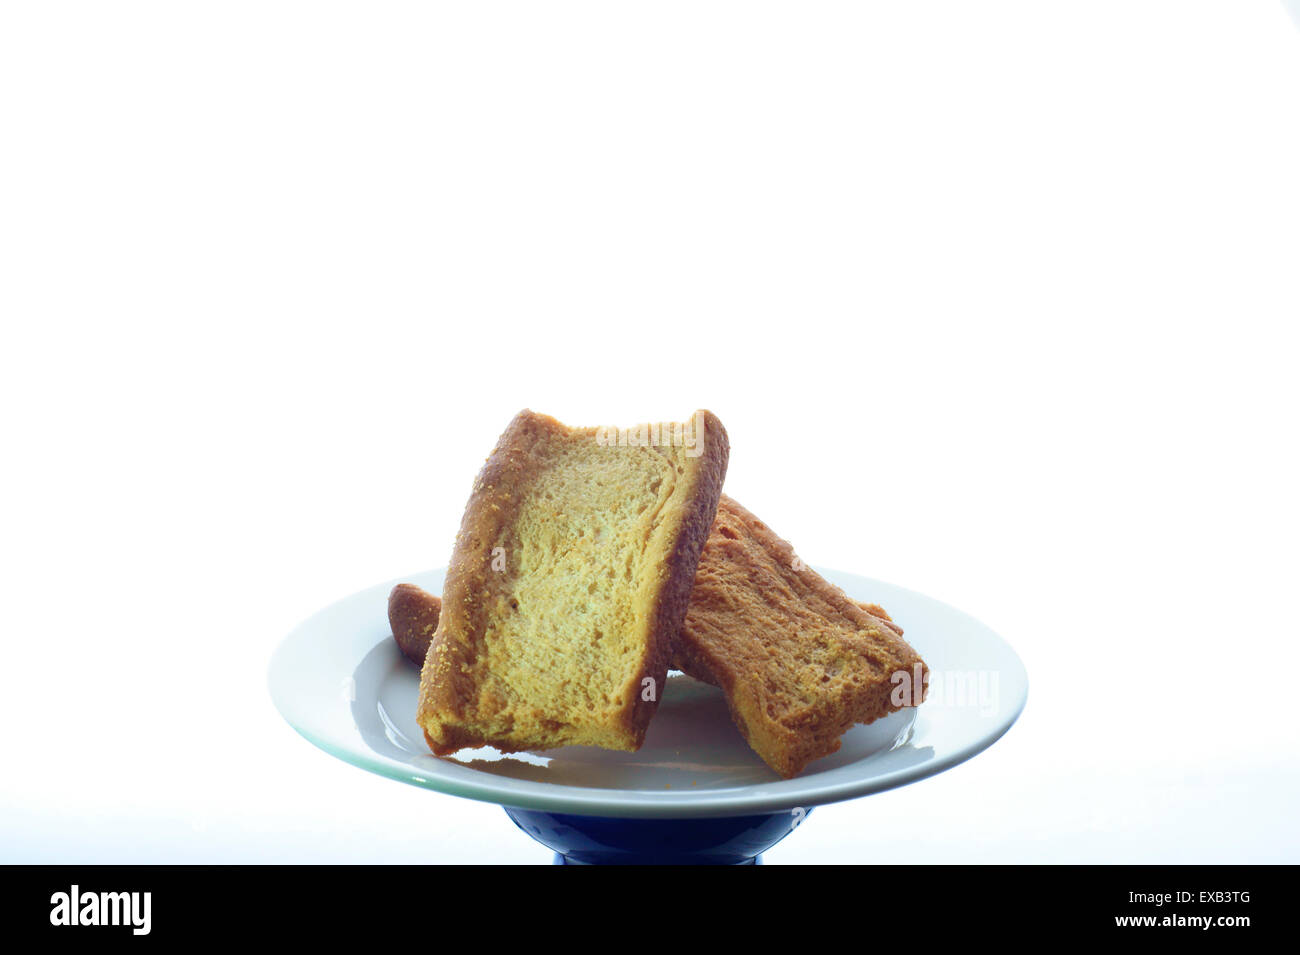 Toast biscuits - Stock Image